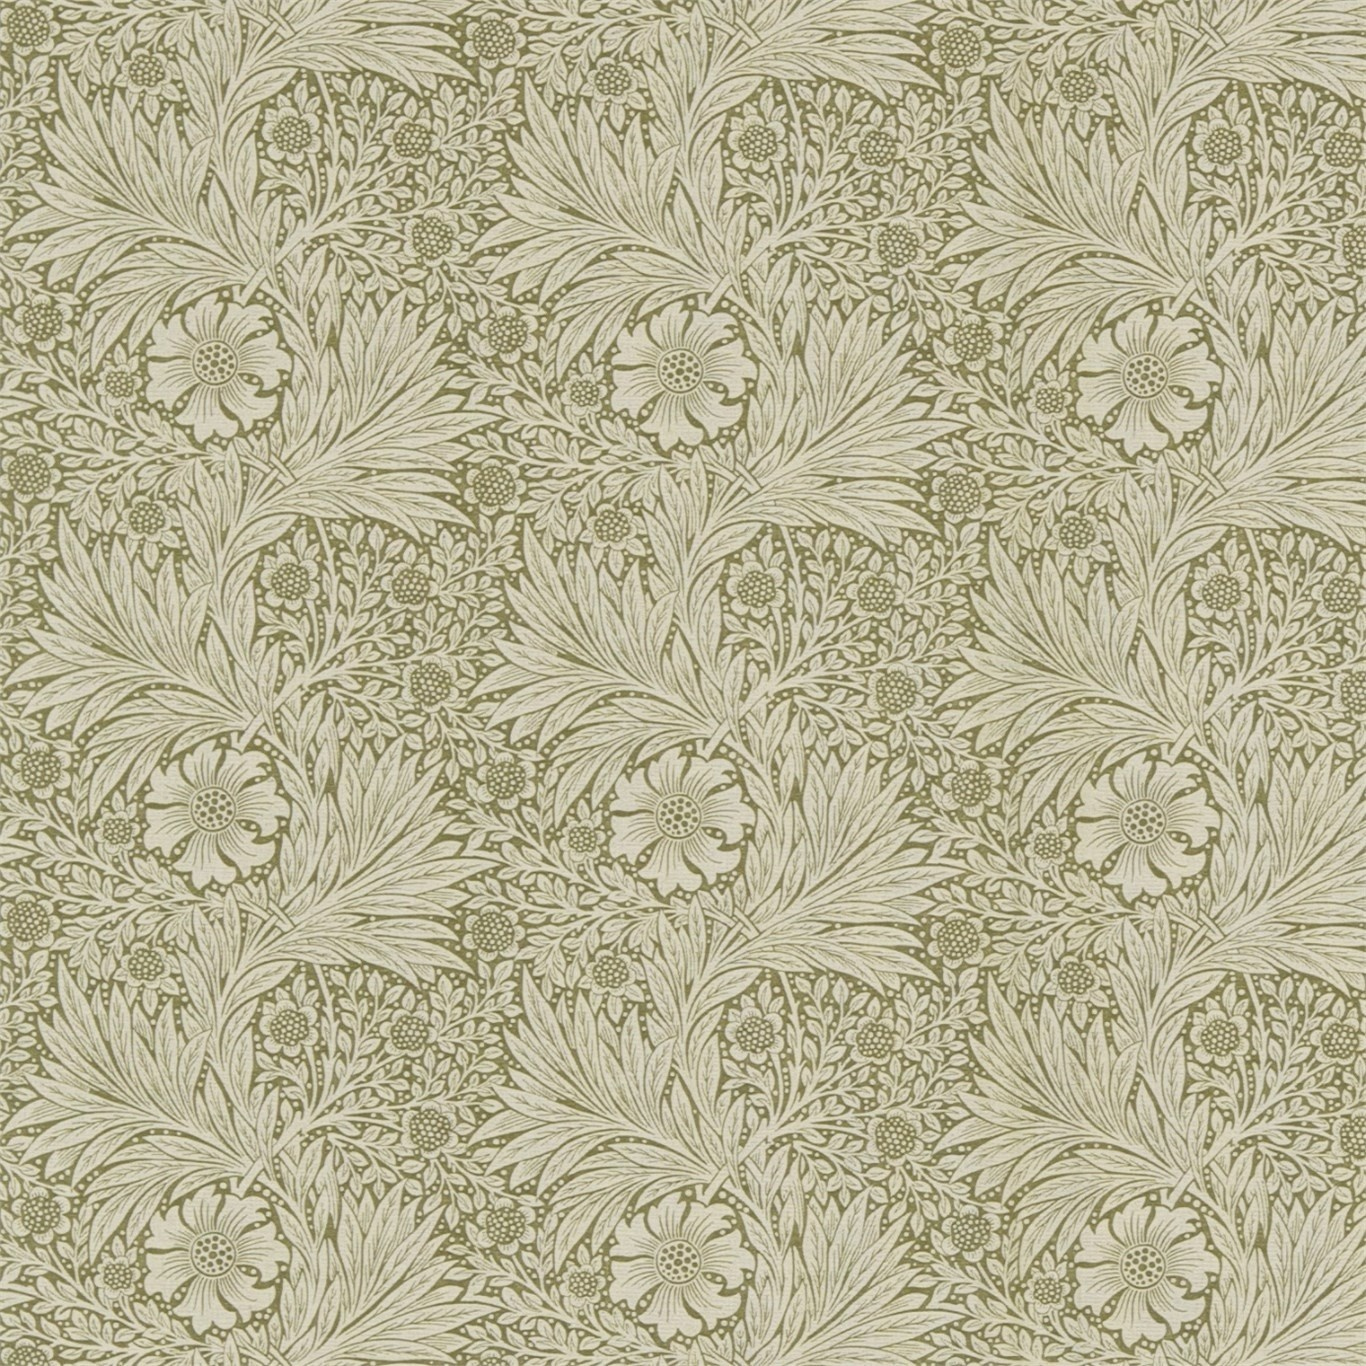 Image of Morris & Co Marigold Olive/Linen Fabric 220318 1.7m Remnant